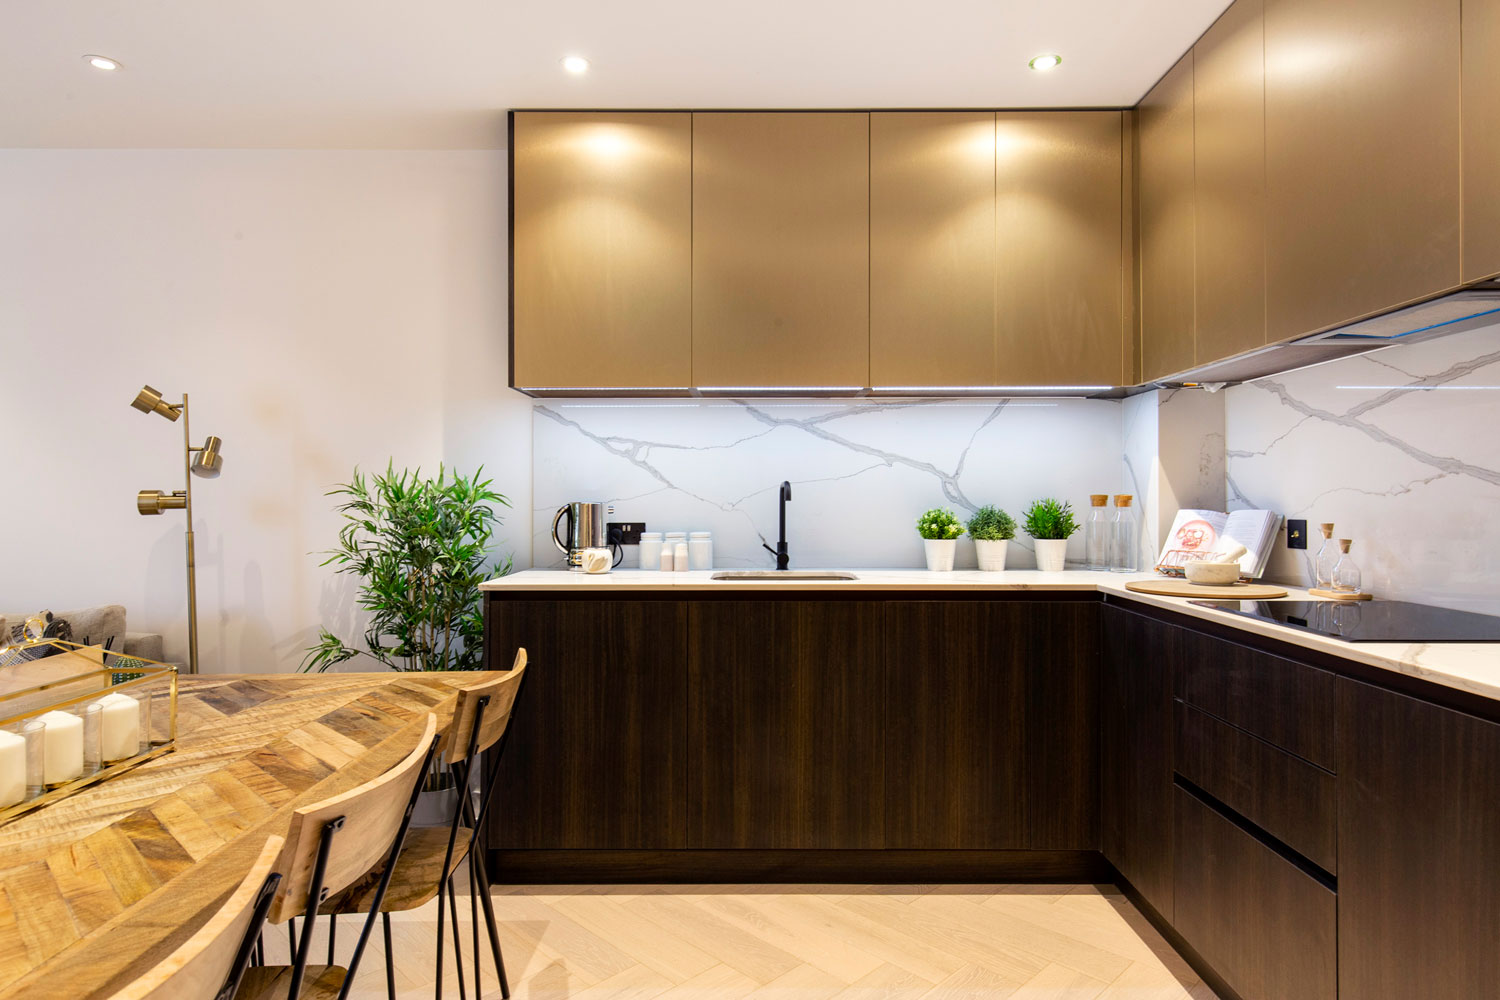 Kitchen at The Lofts E1 By Q Apartments